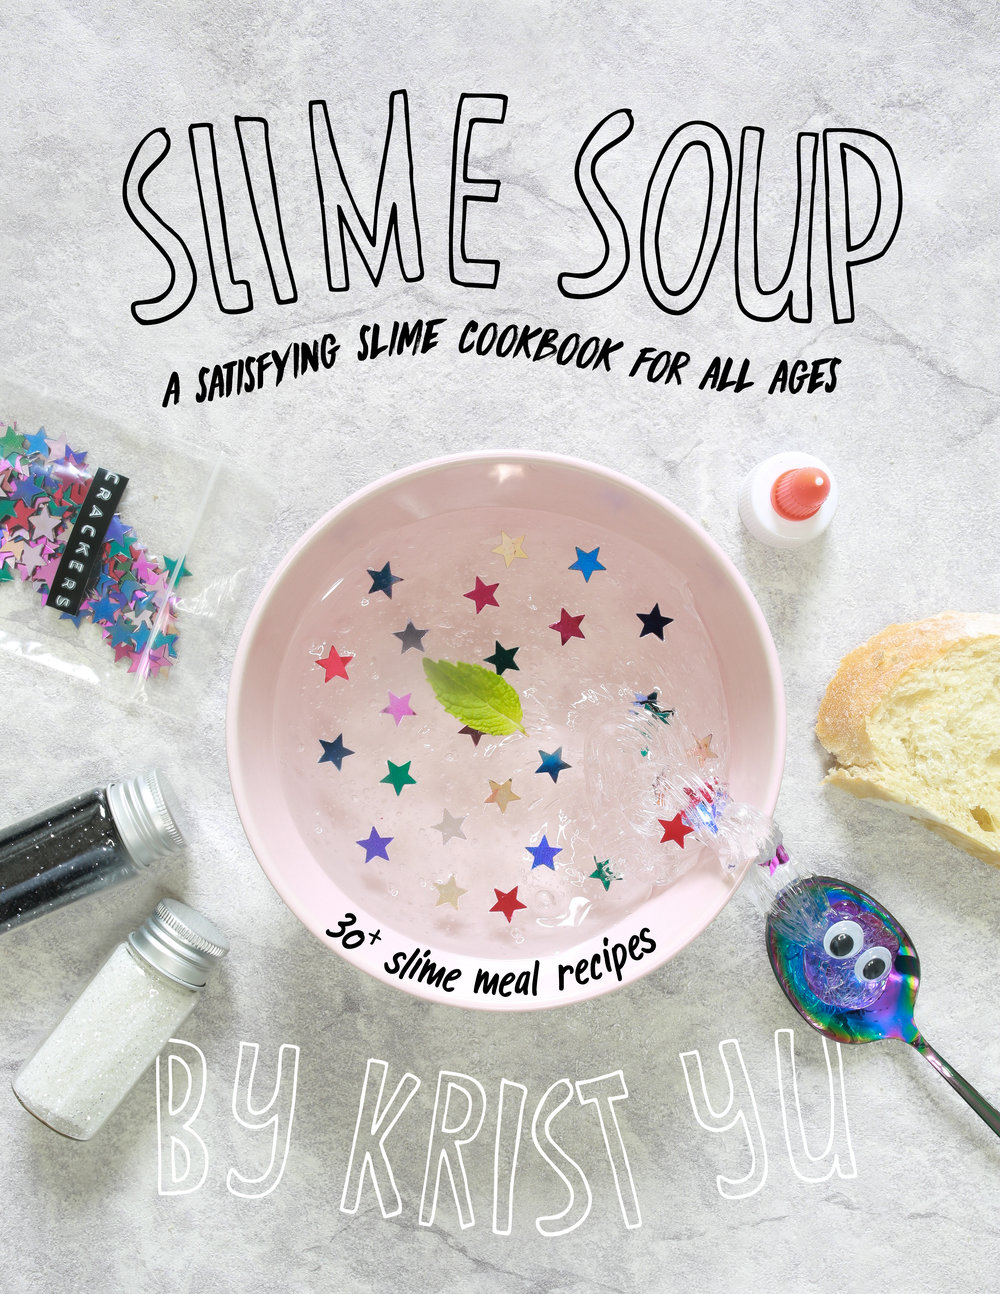 A Look Inside - Hungry? Got a craving for some ooey, gooey slime? Learn how to master the art of culinary slime making with YouTuber and slime Chef, Krist Soup.Included is a full menu of over 30 DIY slime meal recipes for Breakfast, Lunch, Dinner, and Dessert. Each recipe comes with step by step instructions and guided images to help relieve stress, enhance creativity, and bring some serious satisfaction to the brain and soul.